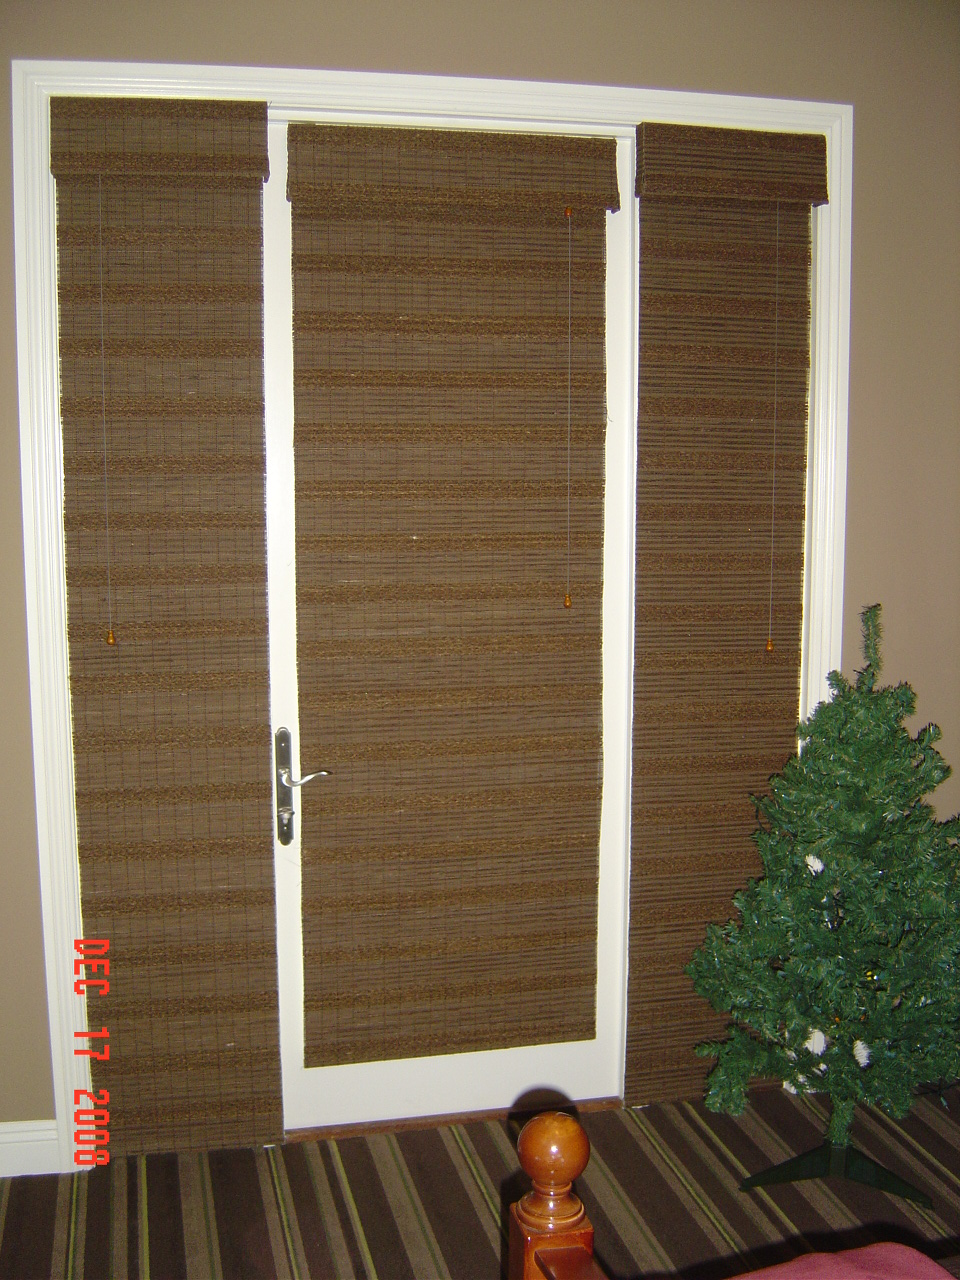 Sidelight window treatments ideas window treatments for Door window shades blinds